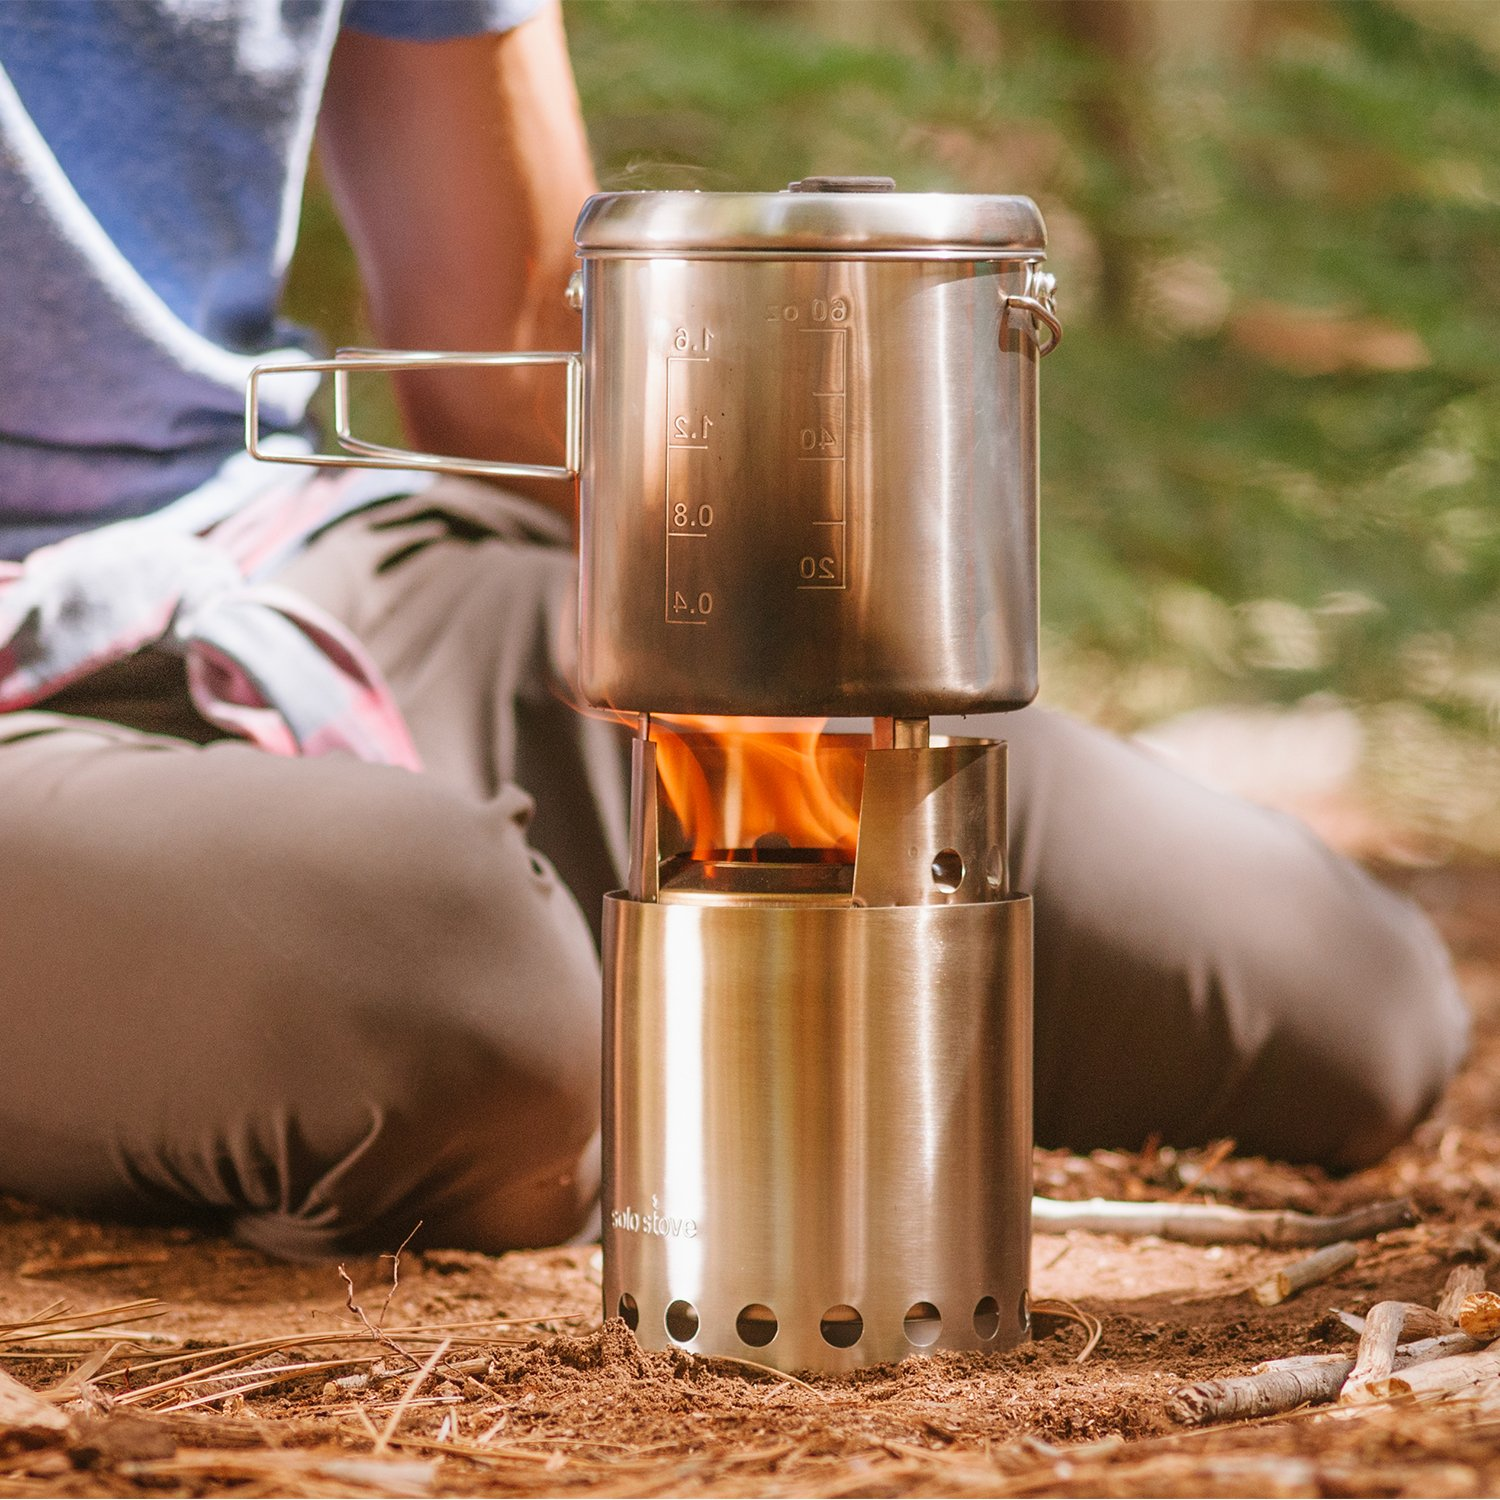 Solo Stove Titan & Solo Pot 1800 Camp Stove Combo: Woodburning Backpacking Stove Great for Camping and Survival by Solo Stove (Image #7)